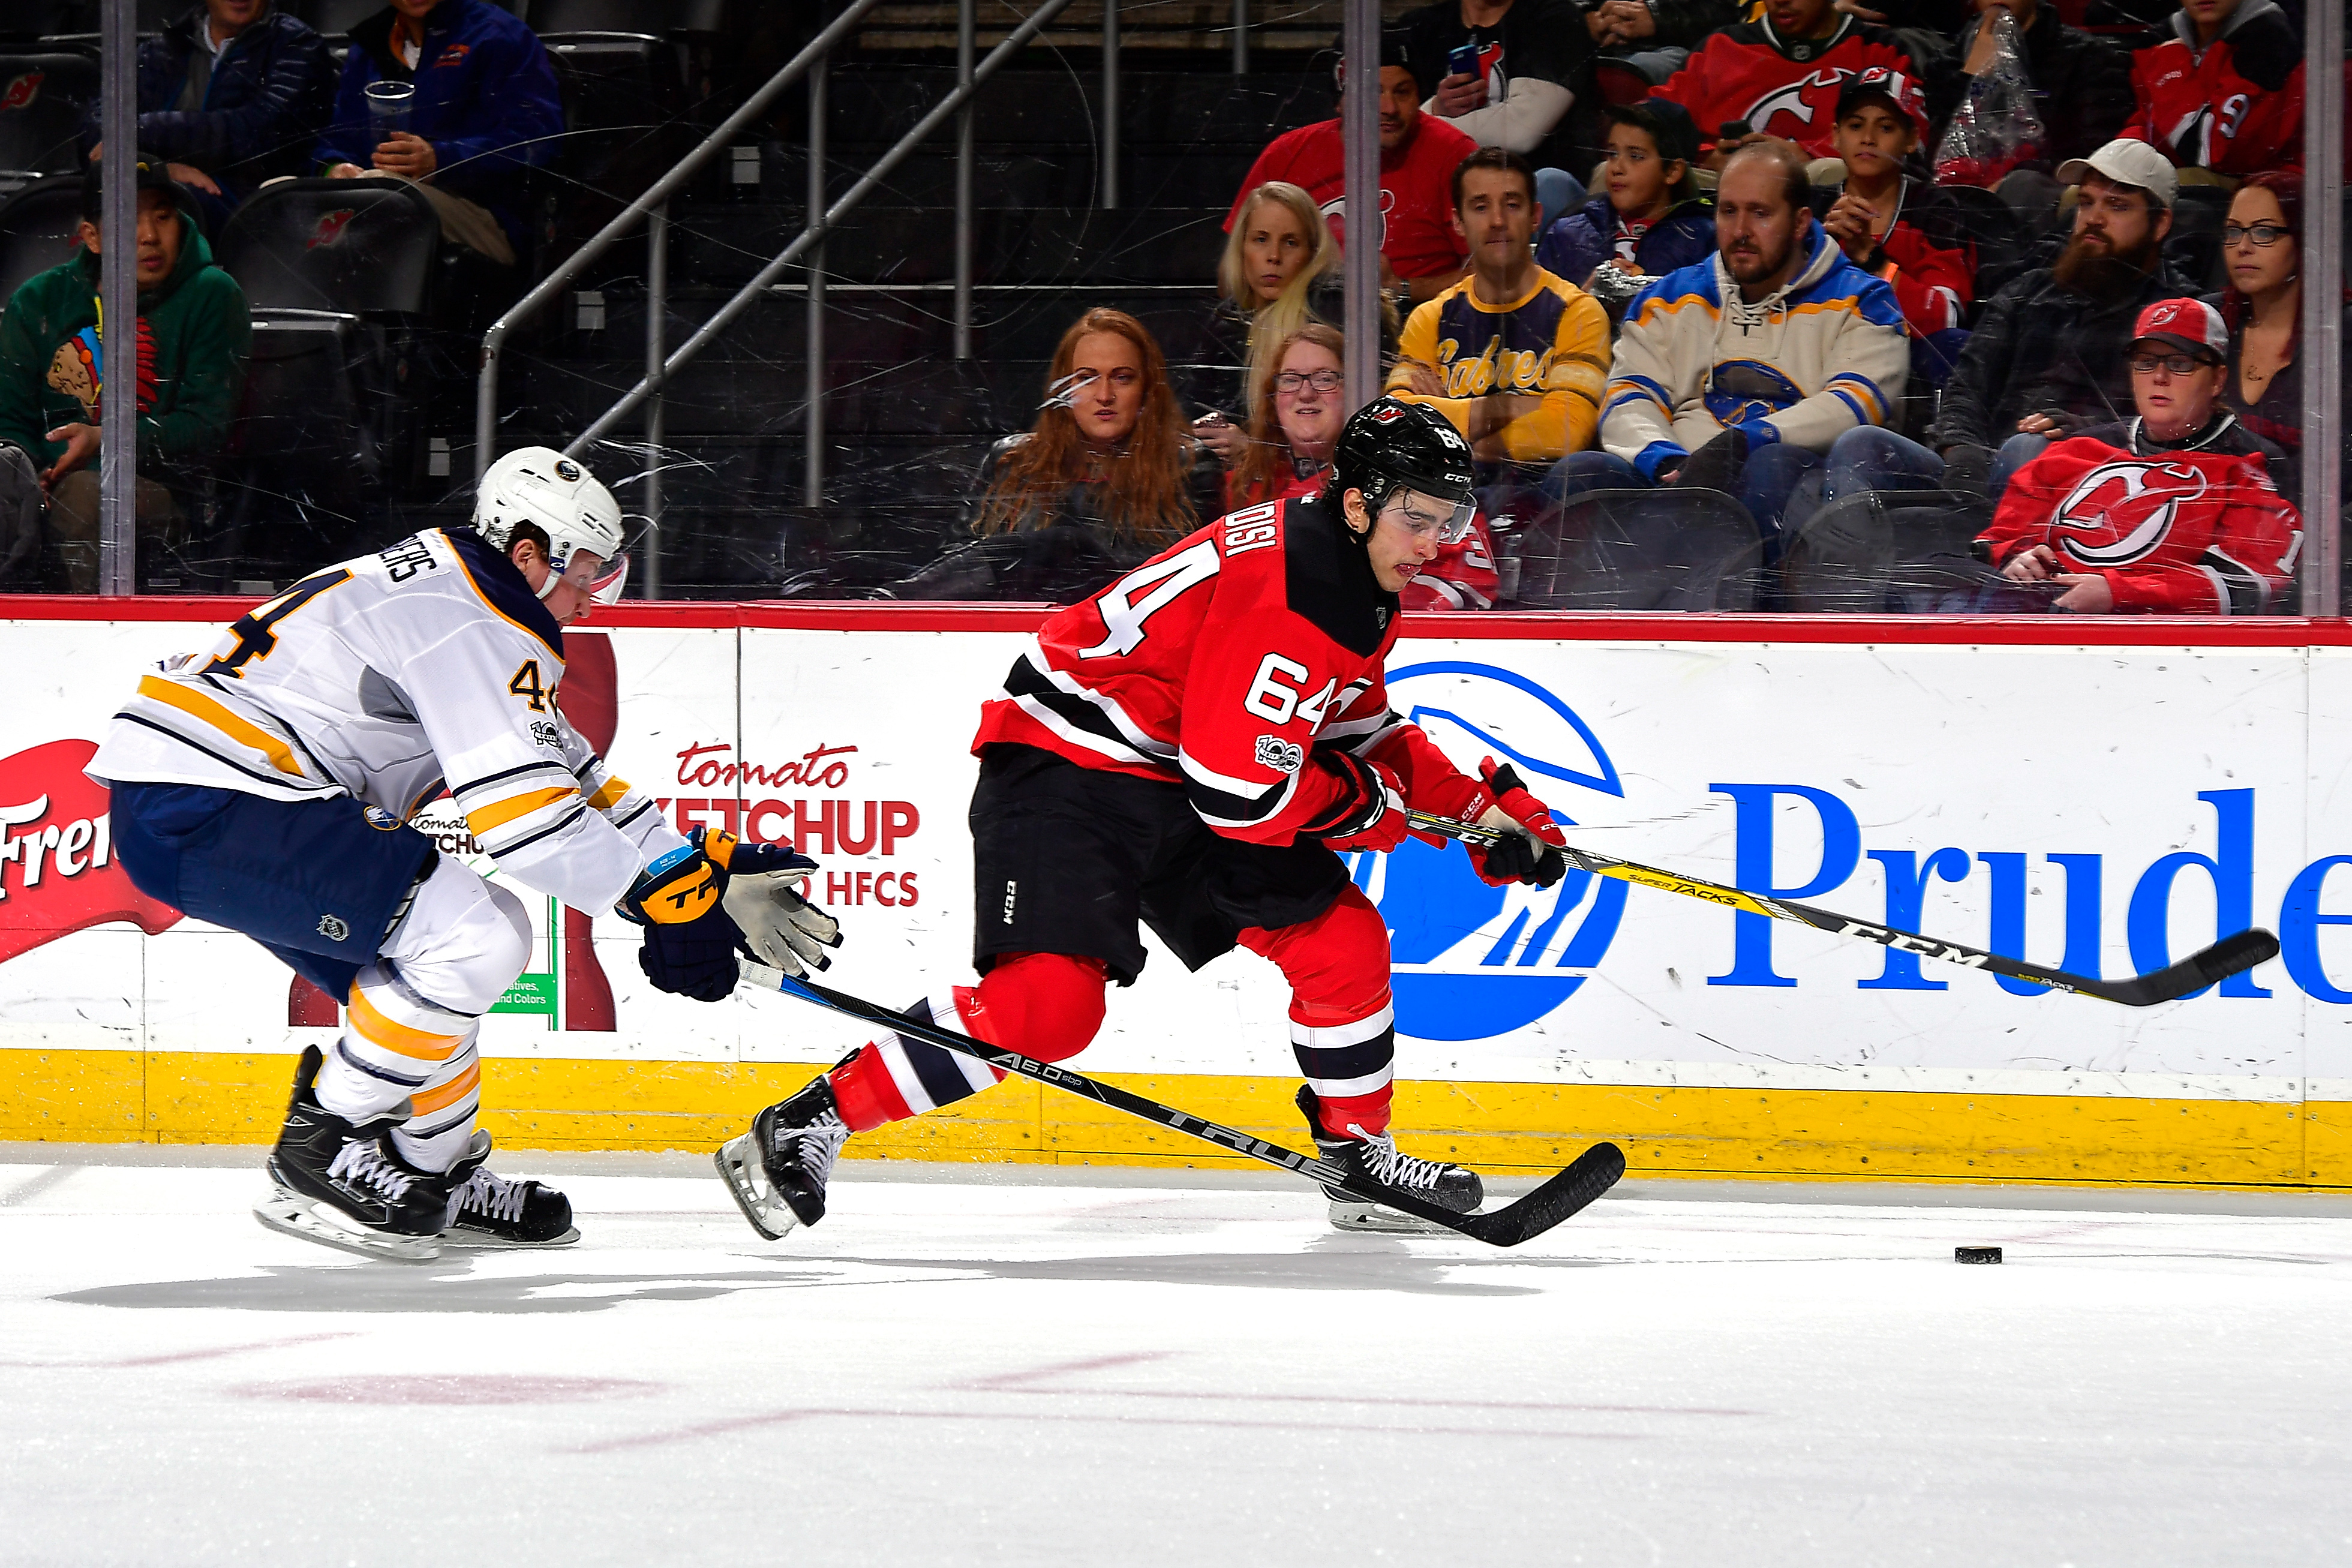 Joseph Blandisi and the Devils were a step ahead of Nicolas Deslauriers and the Sabres. (Getty Images)